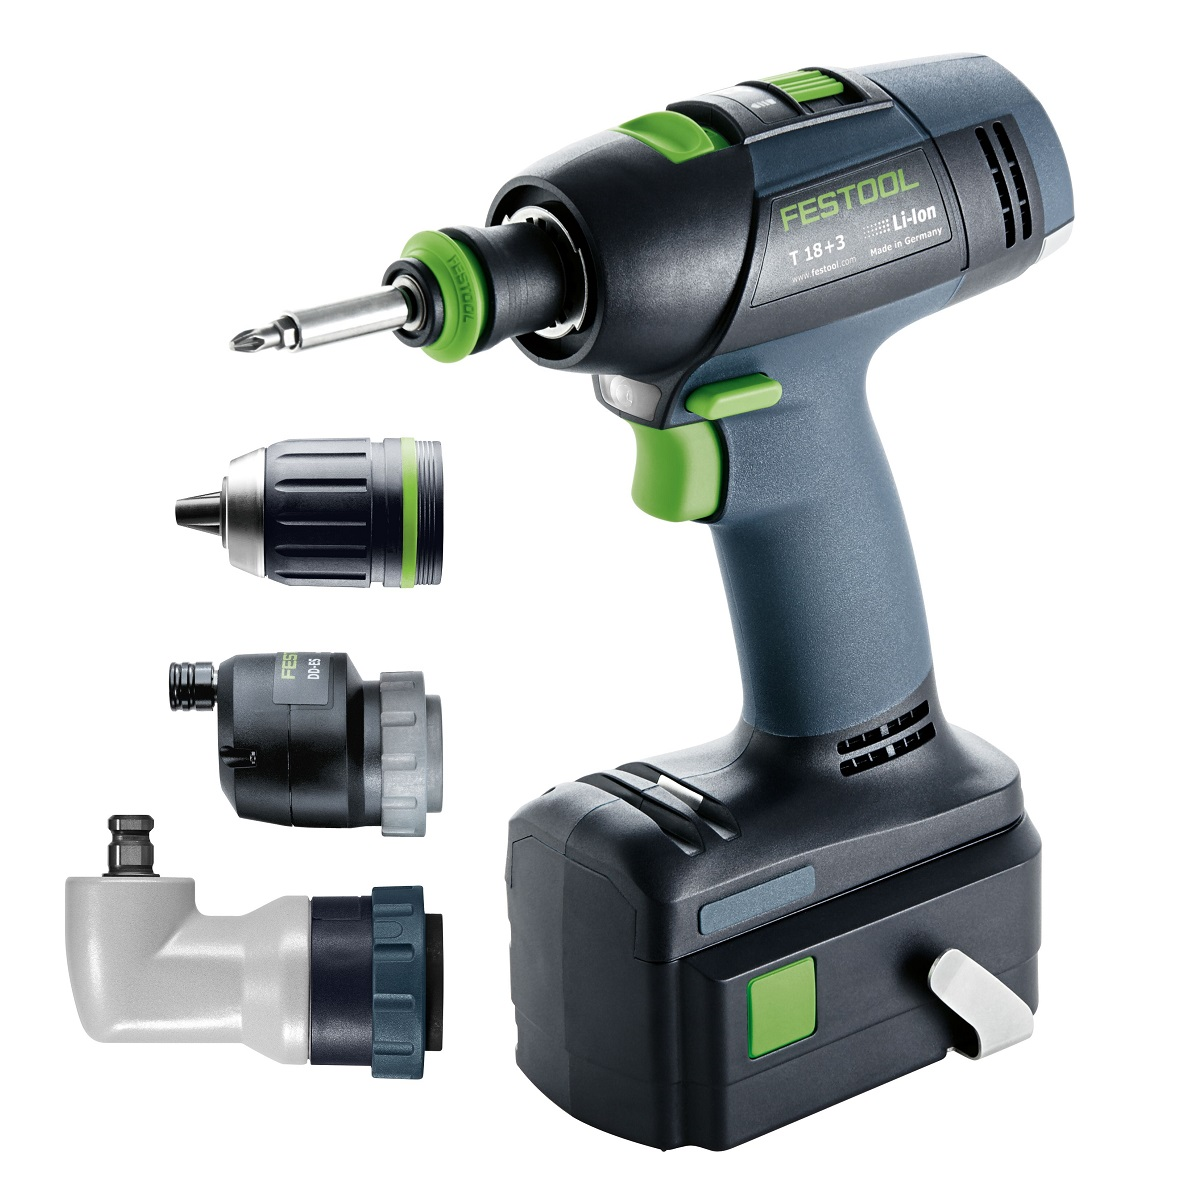 festool tools buy online at anglia tool centre. Black Bedroom Furniture Sets. Home Design Ideas